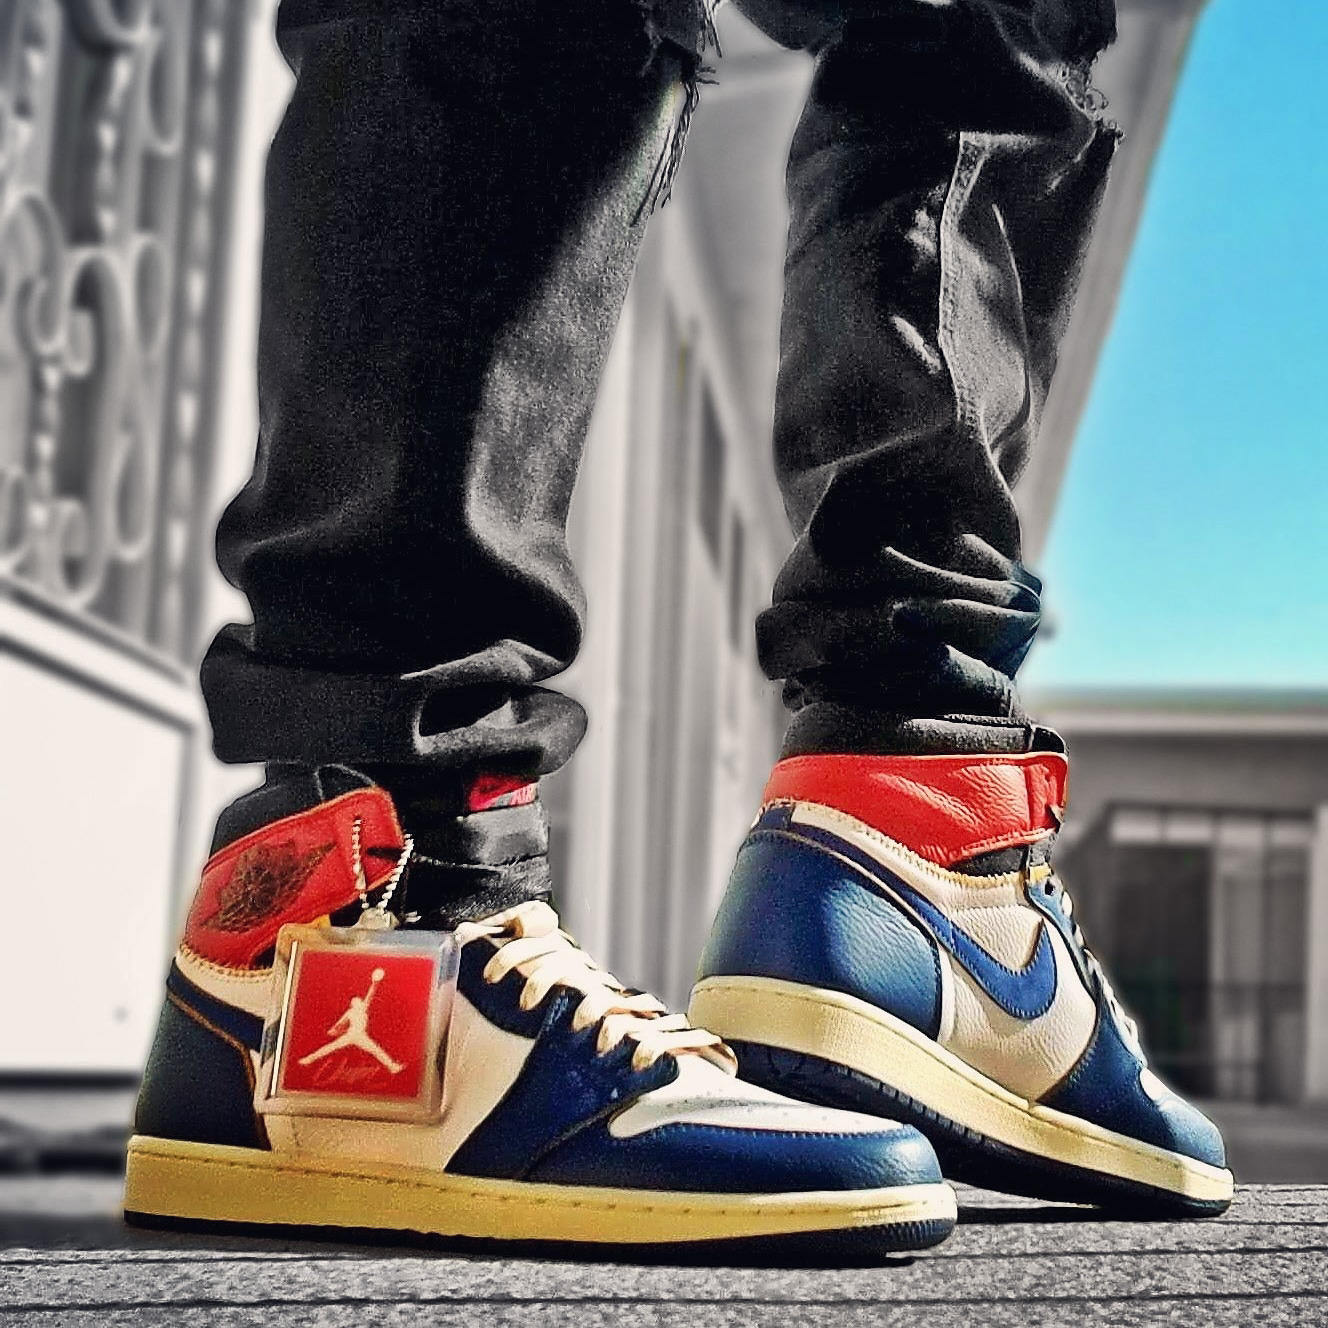 Union x Air Jordan 1 Retro High OG NRG Storm Blue